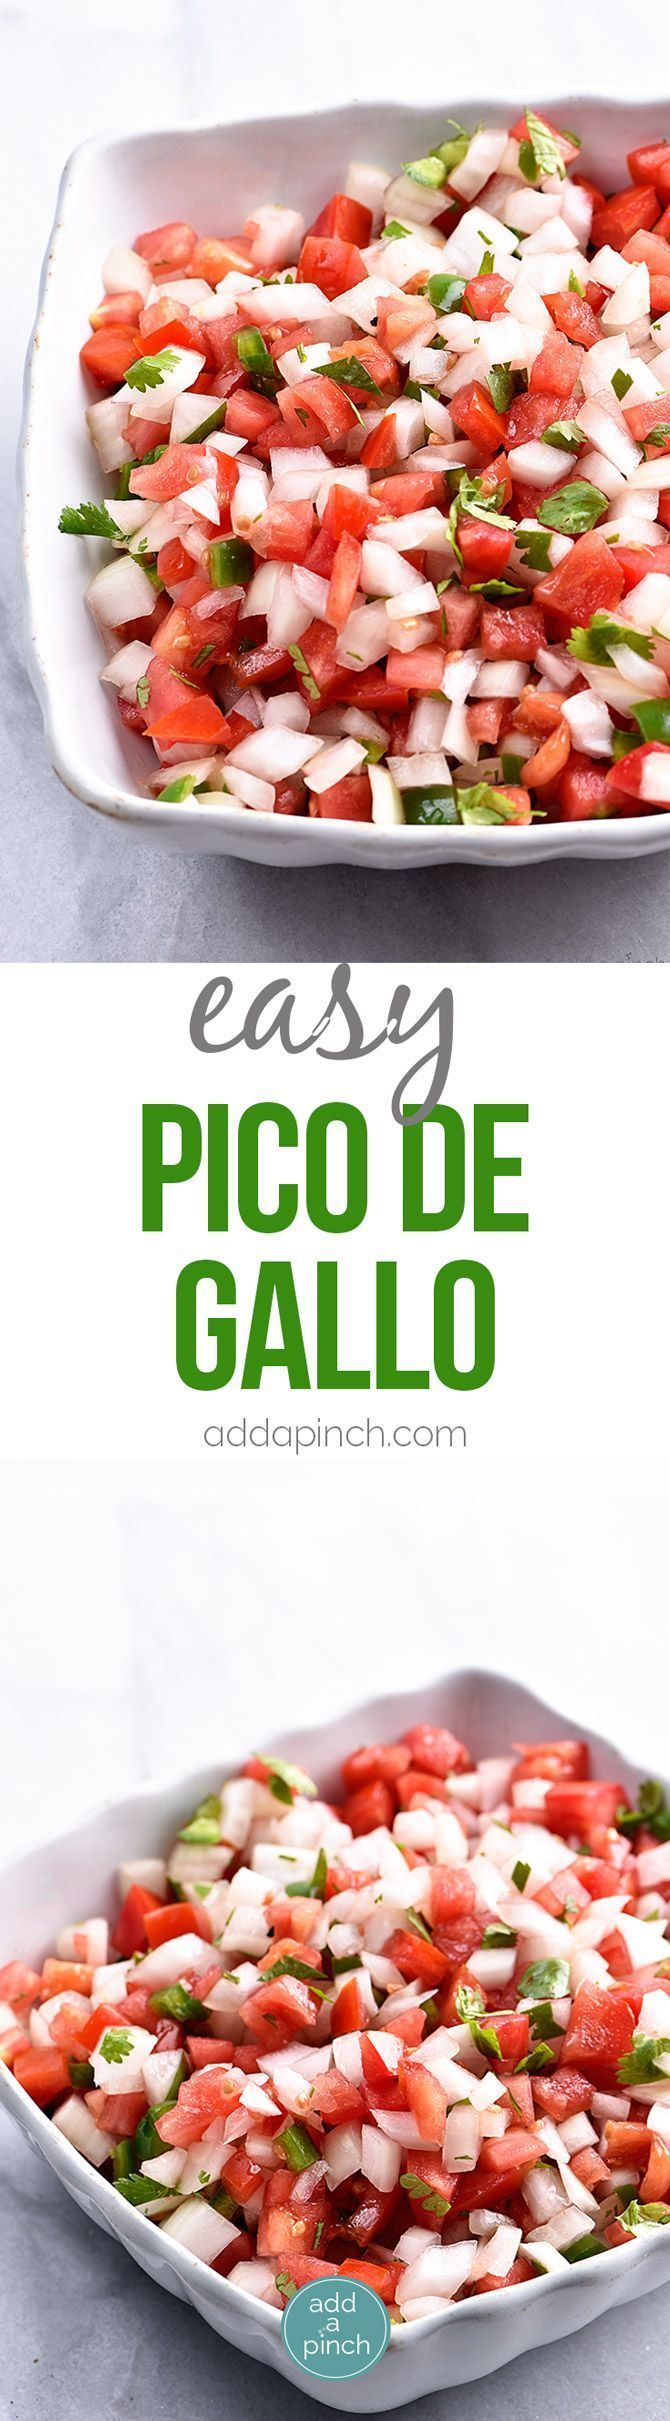 Pico de Gallo Recipe - Pico de Gallo has to be one of the simplest recipes to make and adds so, so, so much flavor to any number of dishes as a topping or just right by itself on a chip! // http://addapinch.com